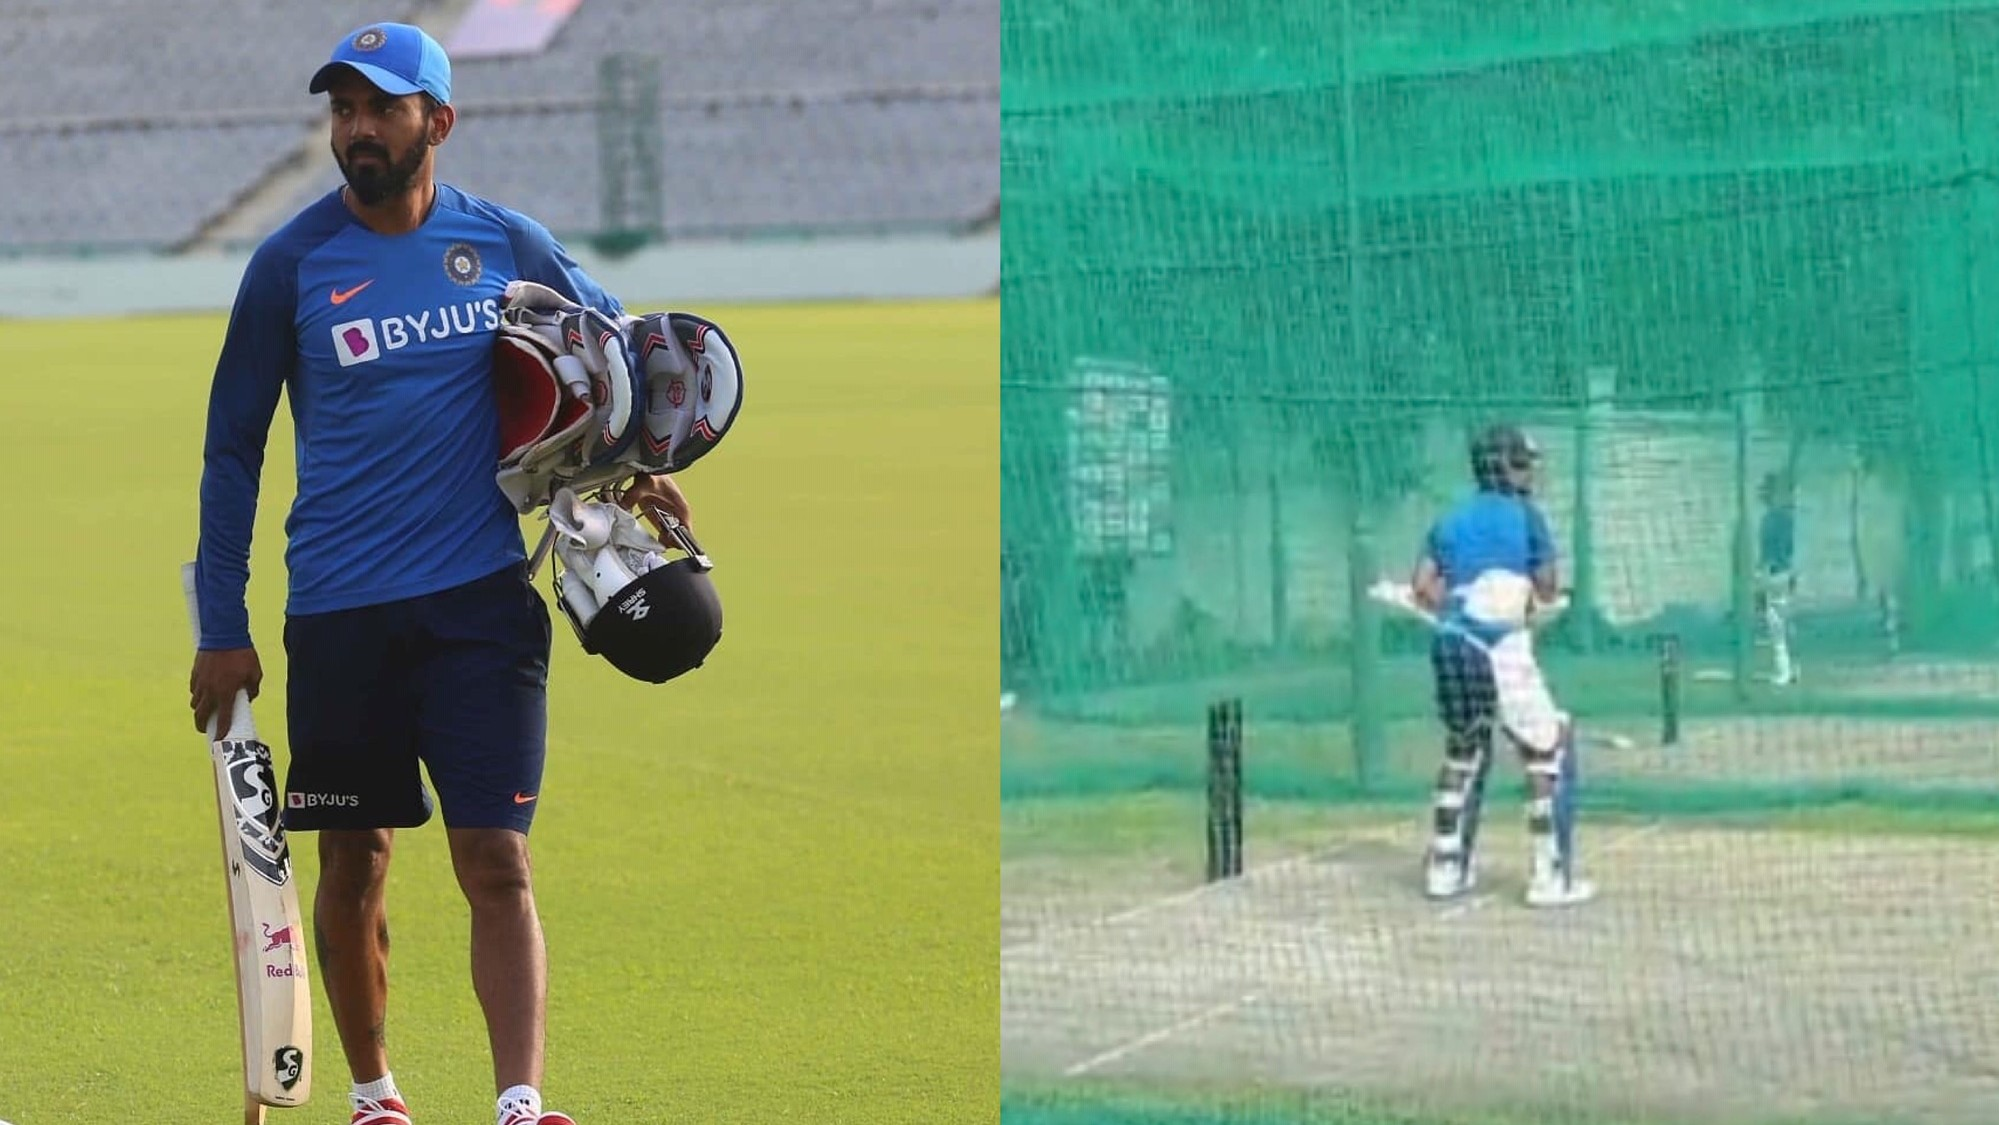 IND v SA 2019: WATCH - Team India gears up for the 2nd T20I in Mohali